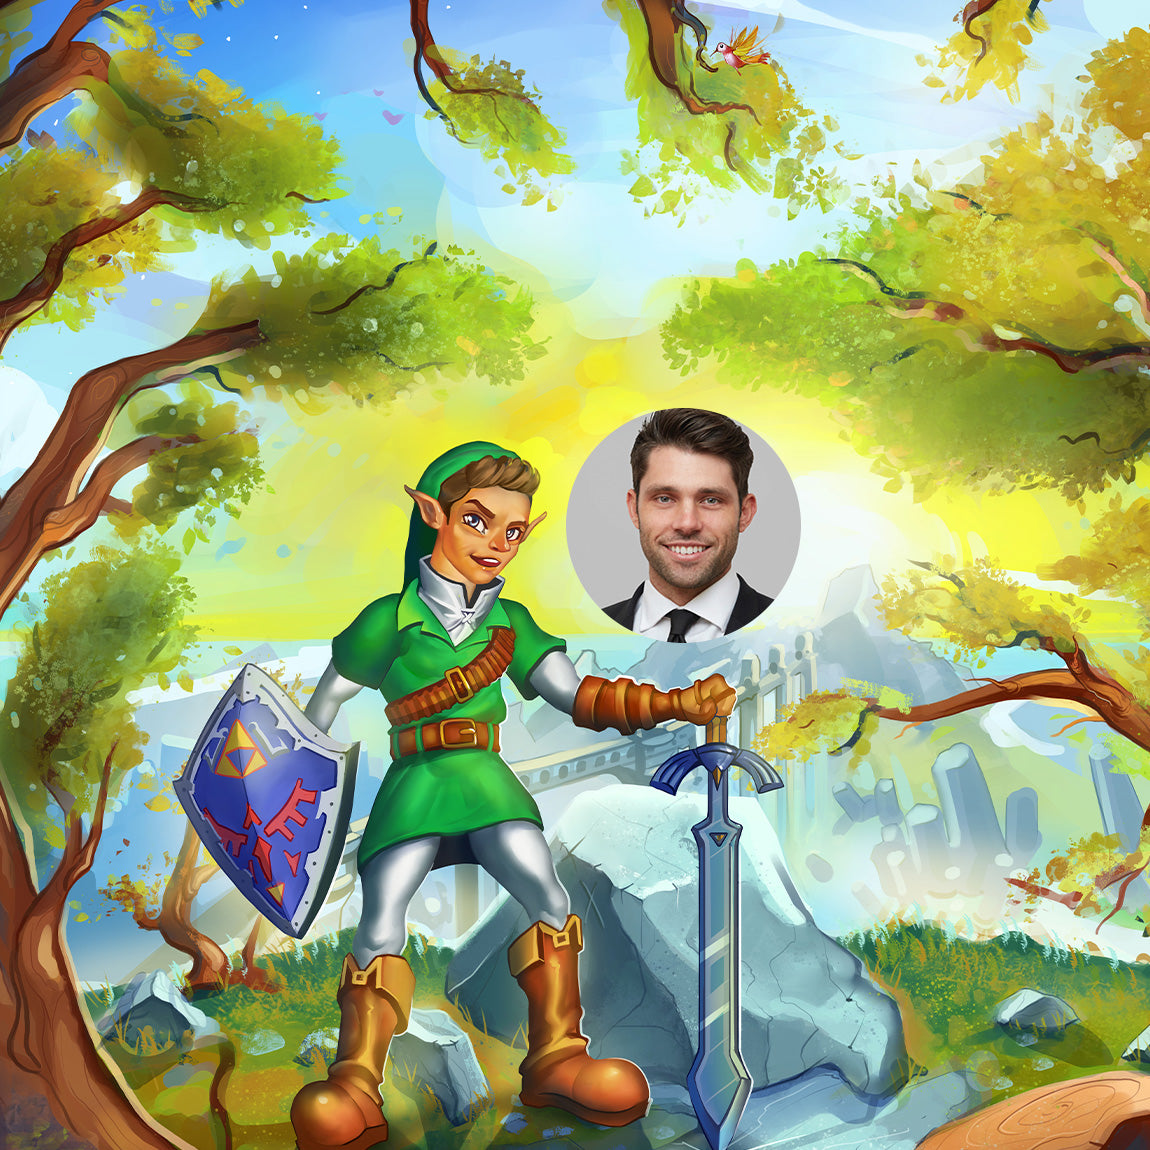 An illustration of a man turned into Zelda game character and a real photo of him besides for comparison. In the background you can see a misty forrest. The character is dressed in green, holding a sword and a shield. He looks like an elf, his ears are pointy. He is also wearing leather boots, gloves and belt. Smiling as if he conquered the enemies.